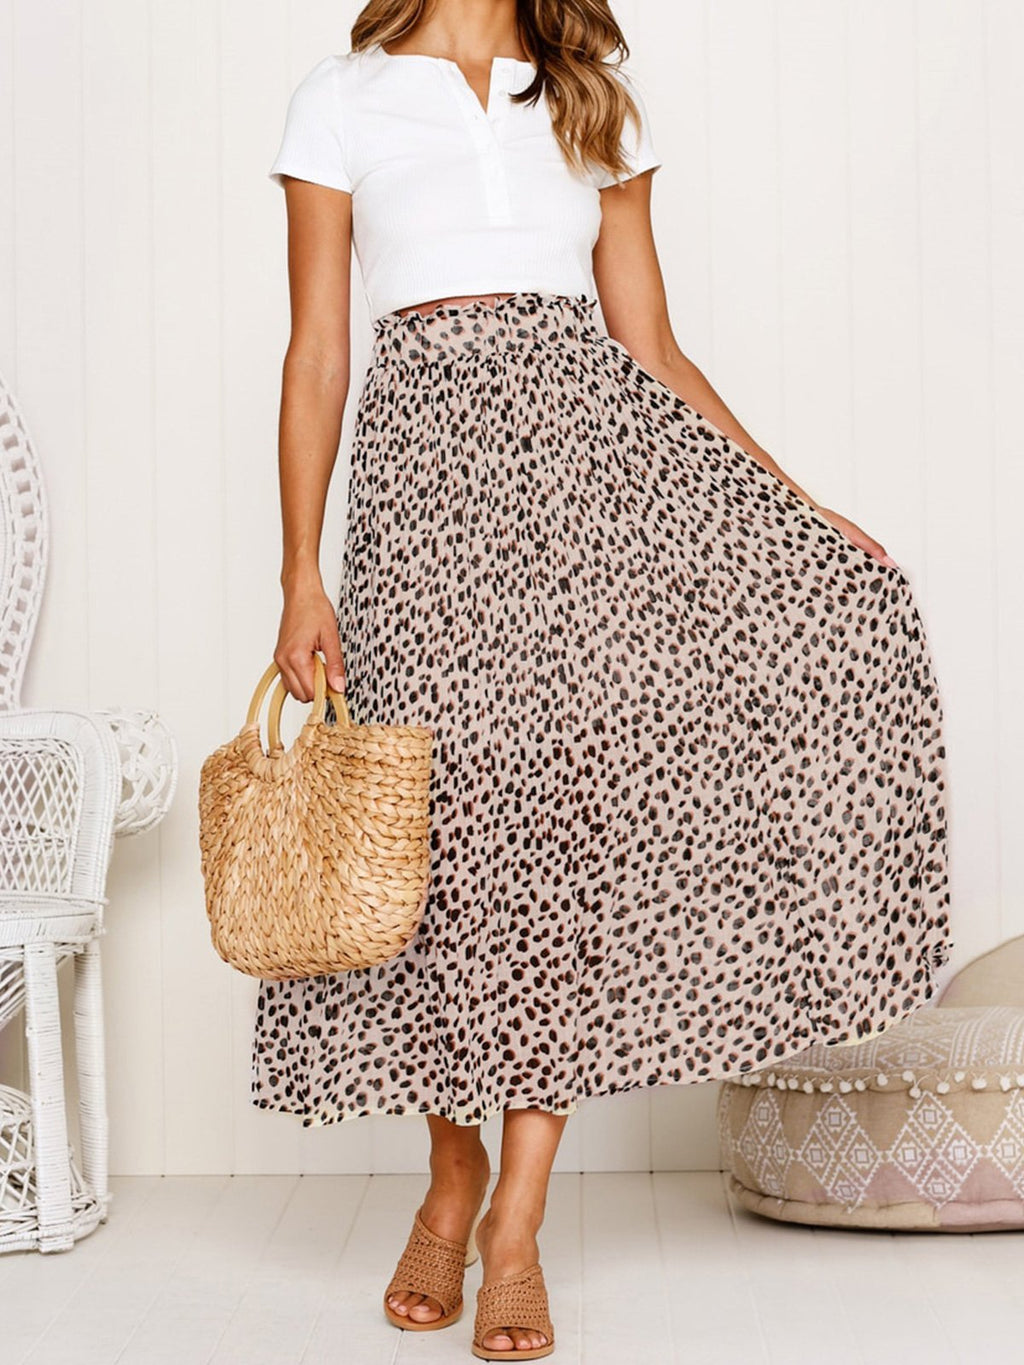 Leopard Print High Waist Midi Skirt - Popross